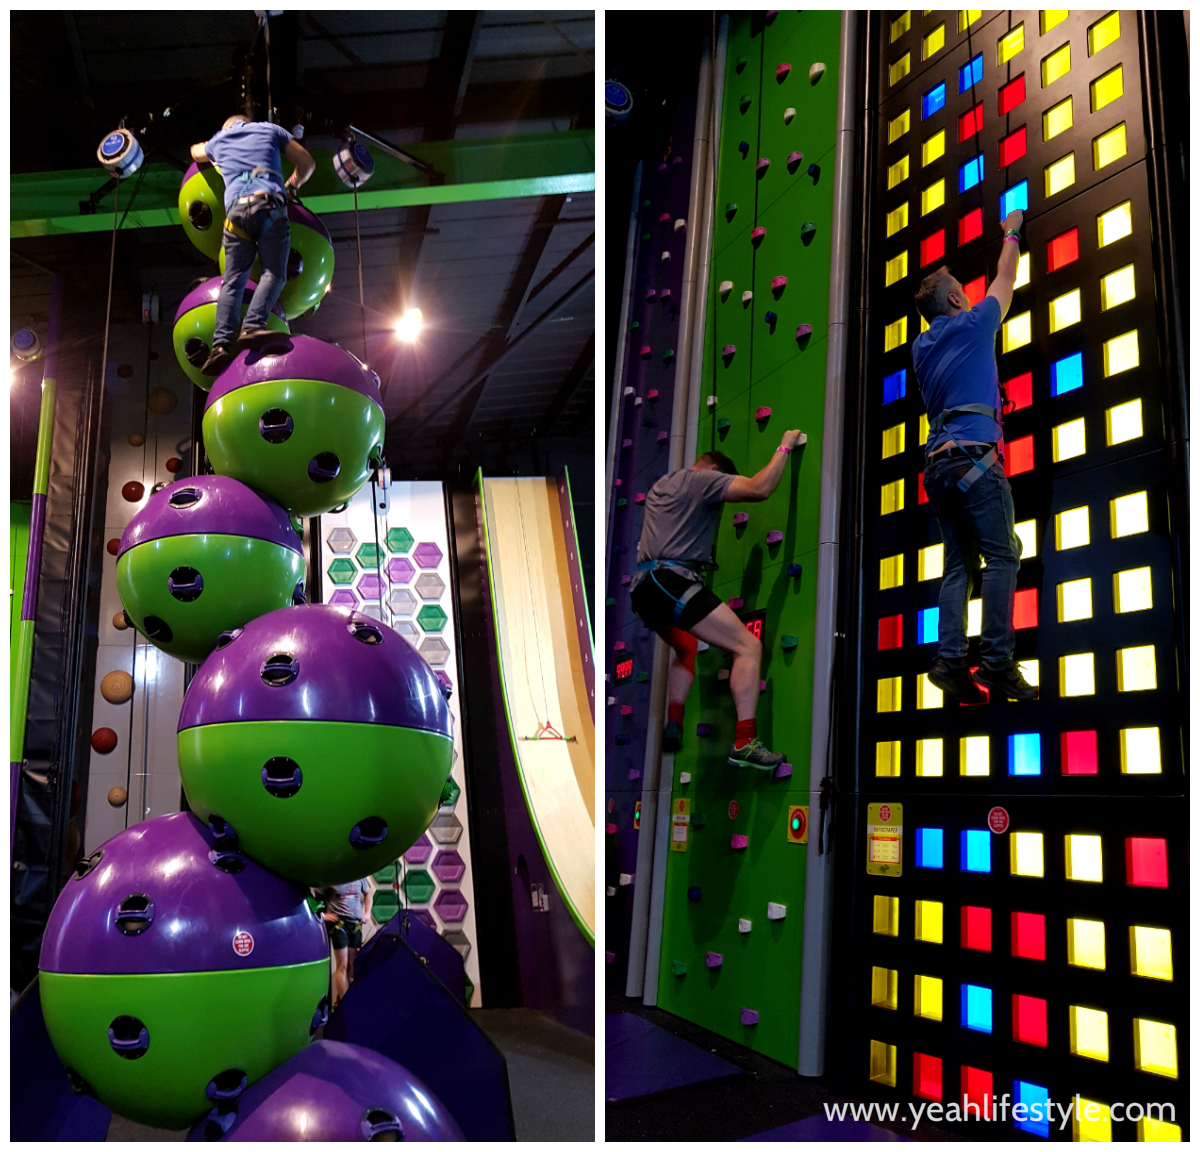 flip-out-chester-cheshire-kids-climbing-blogger-review-yeah-lifestyle